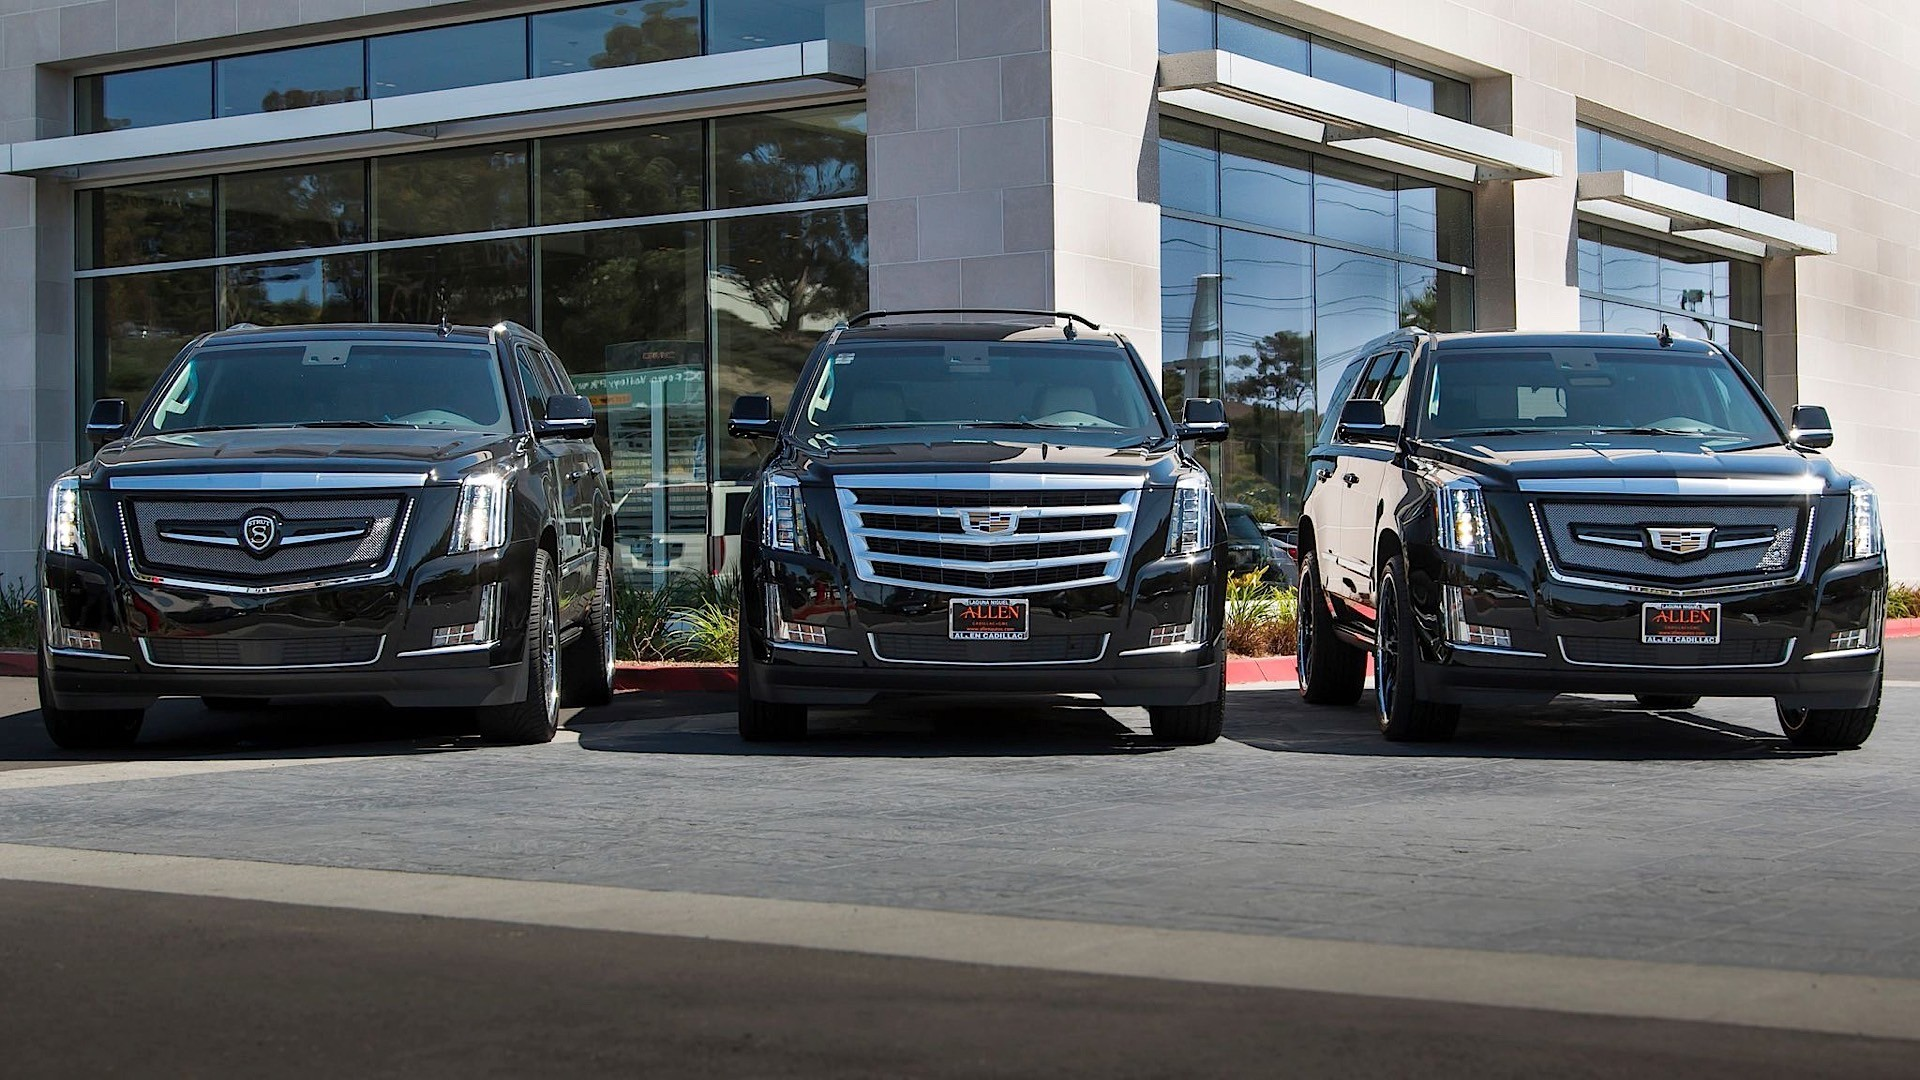 Dr Dre Wallpaper Hd Strut Offers A Slightly More Subtle Grille For Cadillac S